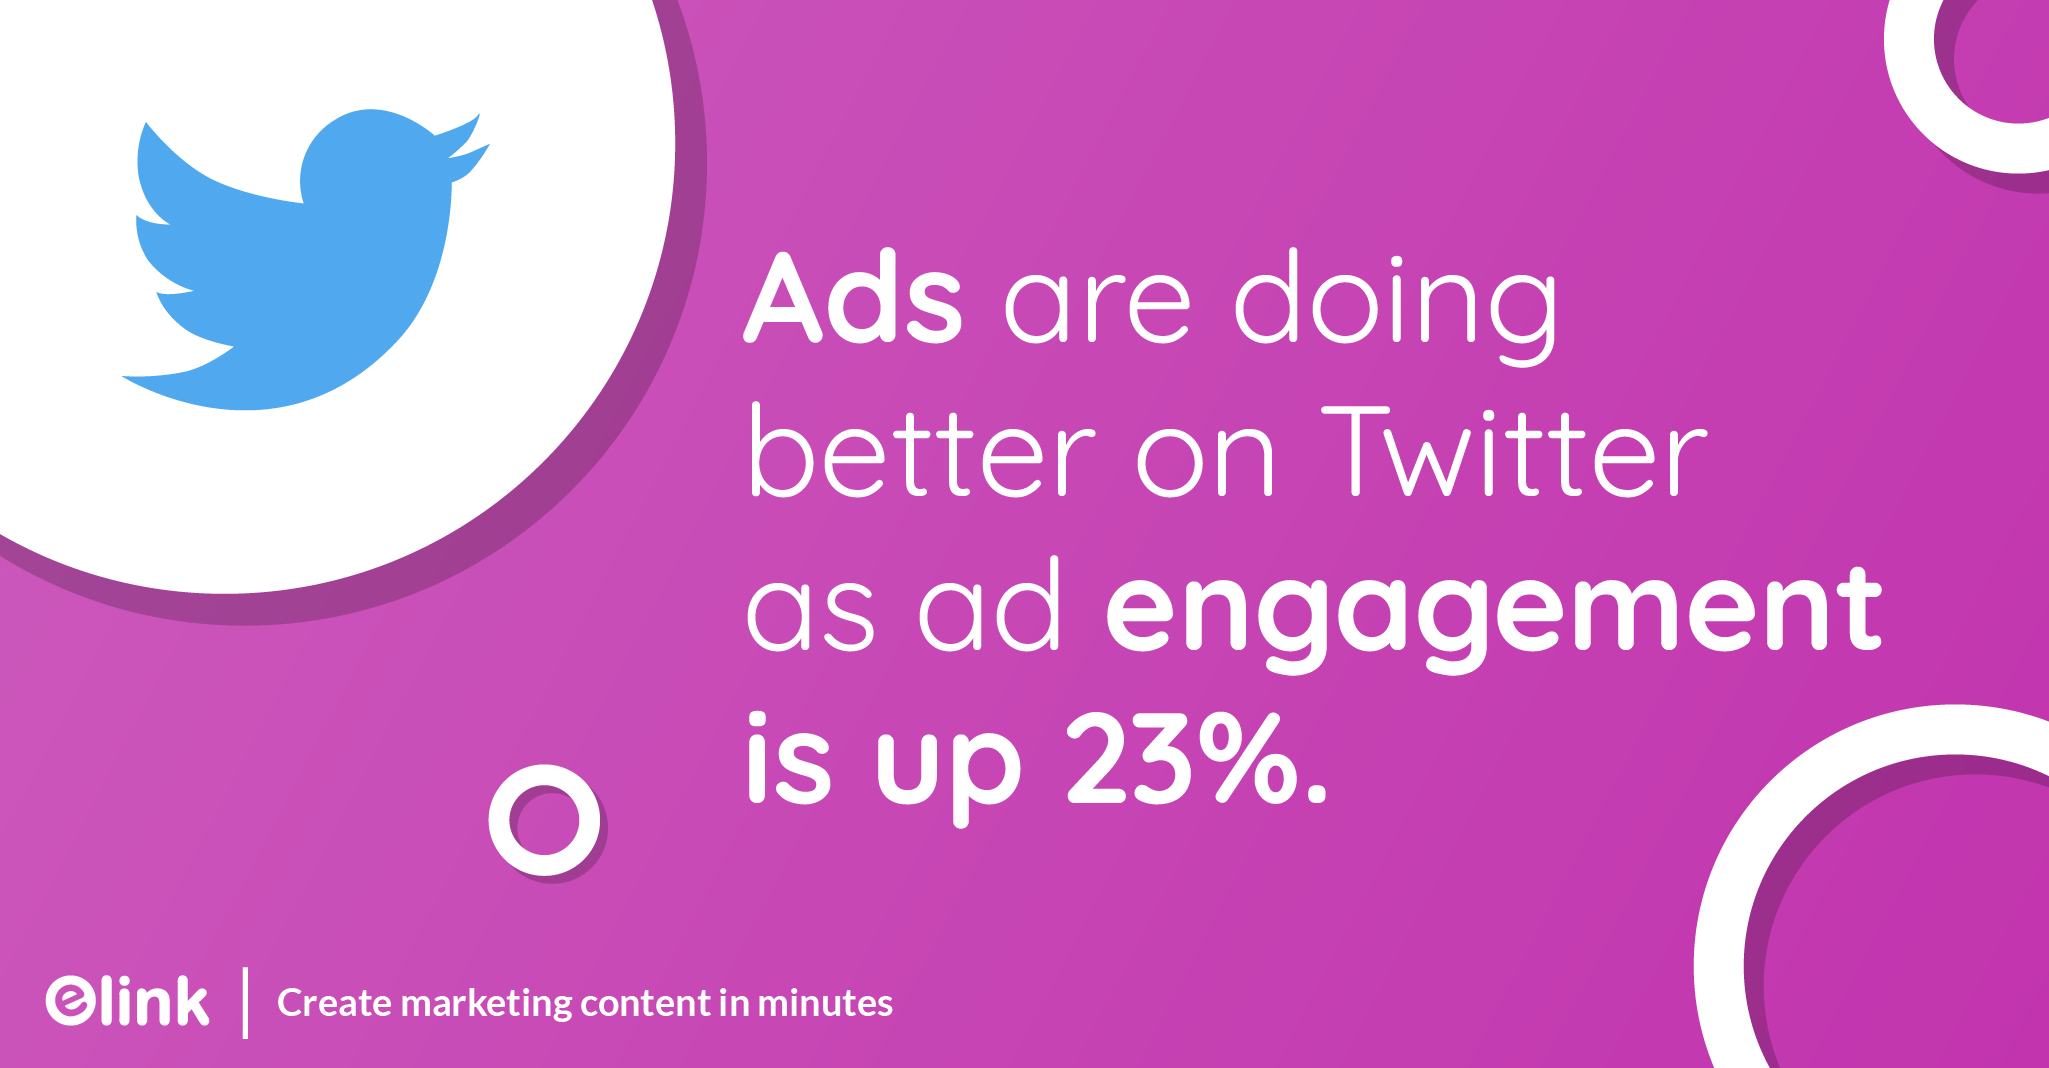 Ads are doing better on Twitter as ad engagement is up 23%.